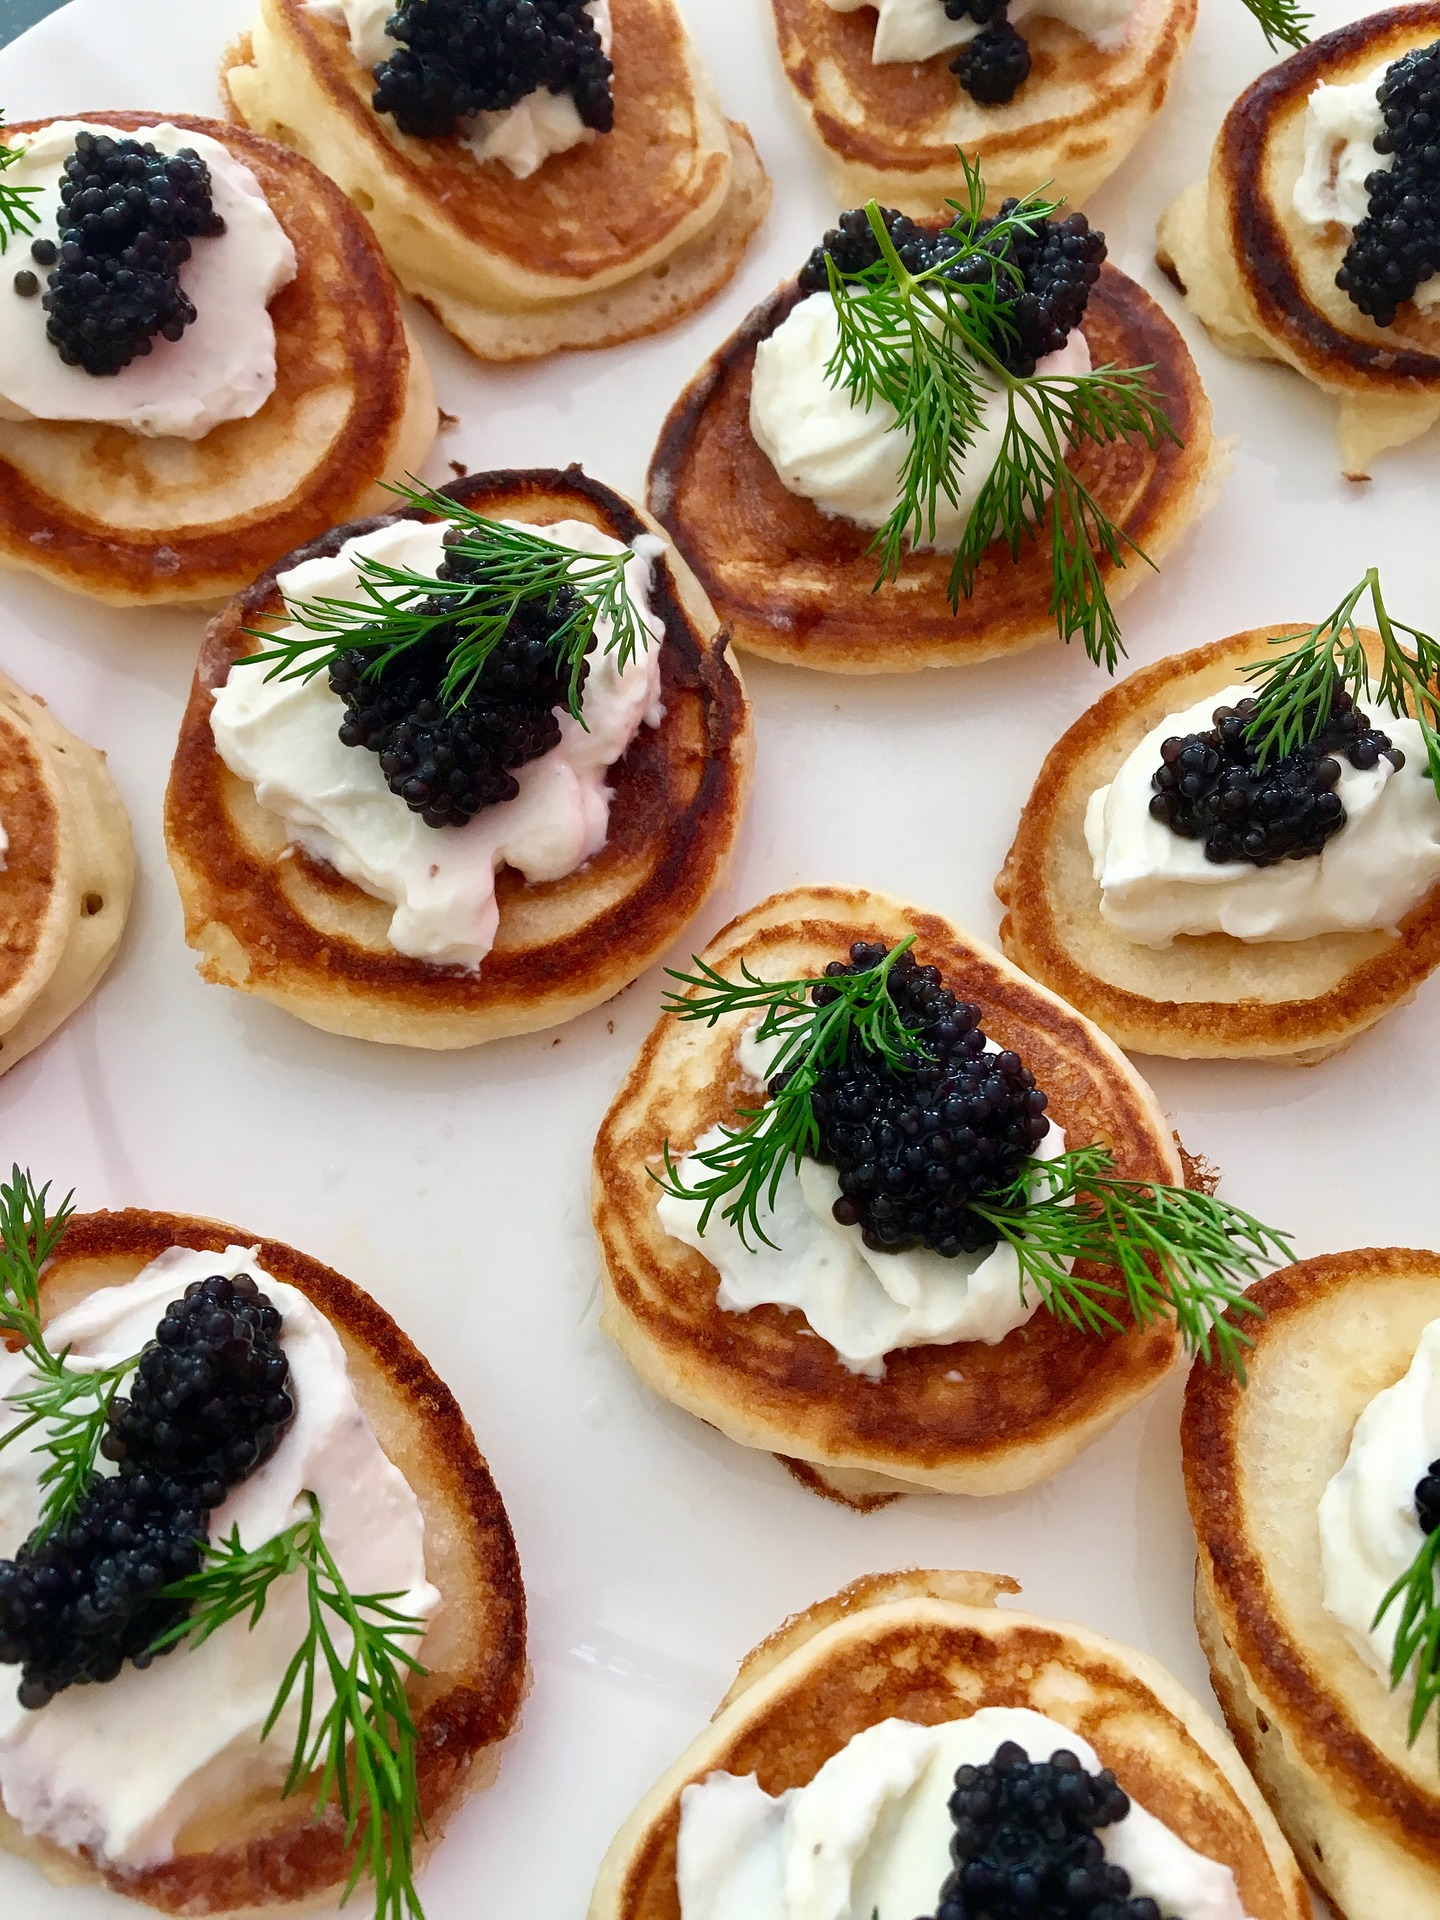 banner image is of Caviar on toast